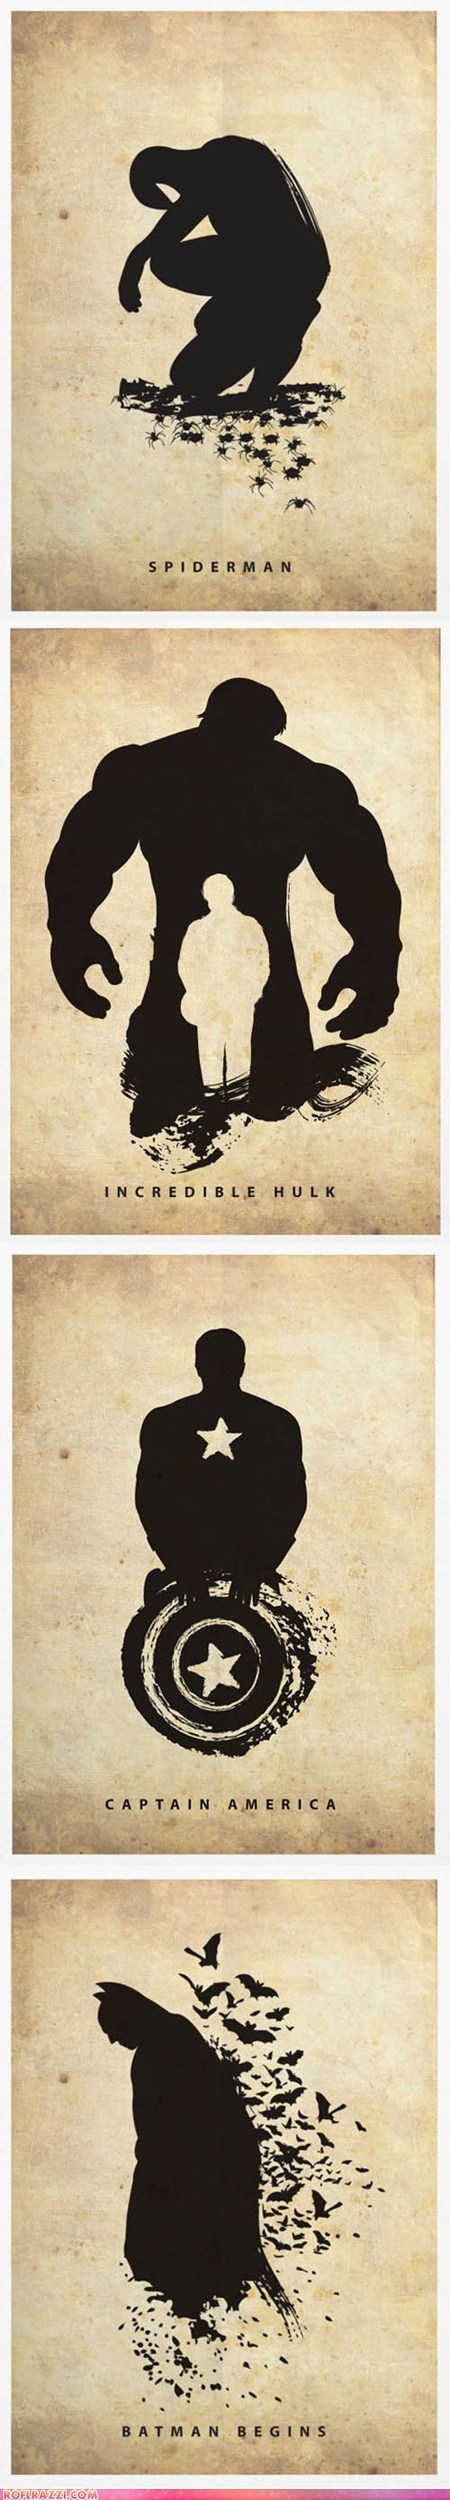 art batman captain america cool Movie poster Spider-Man the incredible hulk - 6162315264